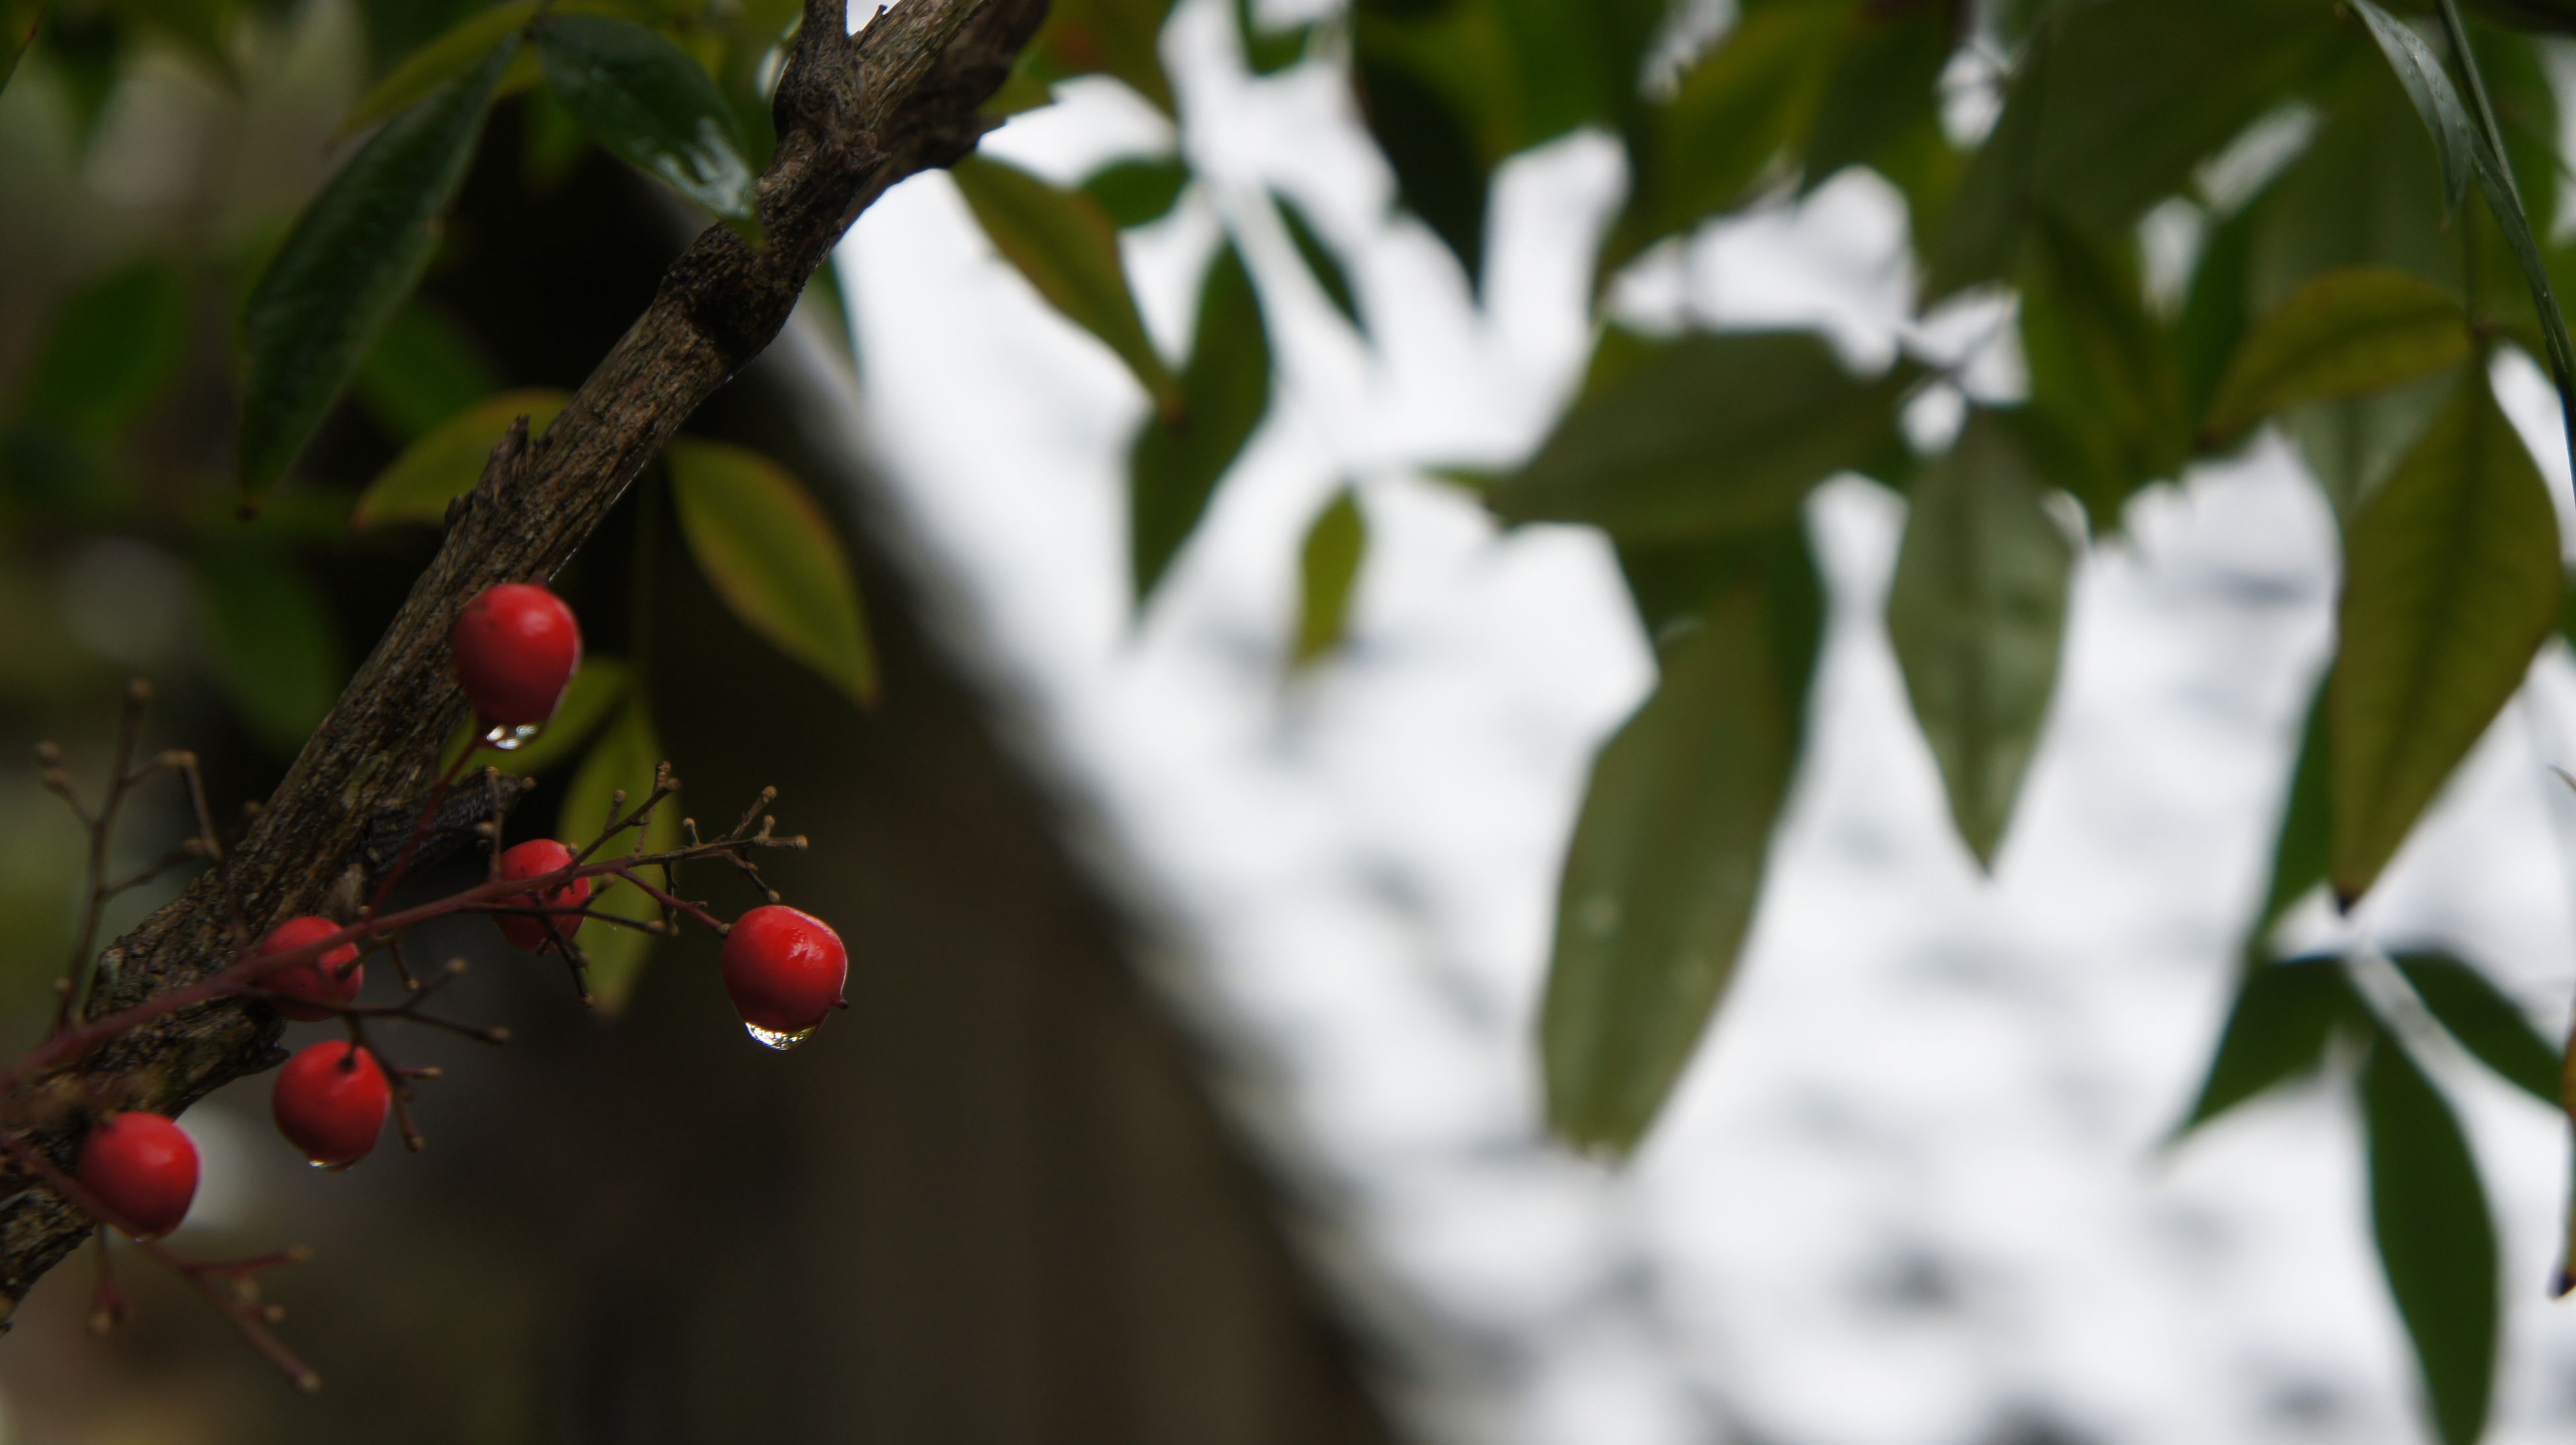 fruit, growth, red, nature, close-up, leaf, food and drink, tree, outdoors, no people, branch, freshness, plant, beauty in nature, day, green color, healthy eating, rose hip, food